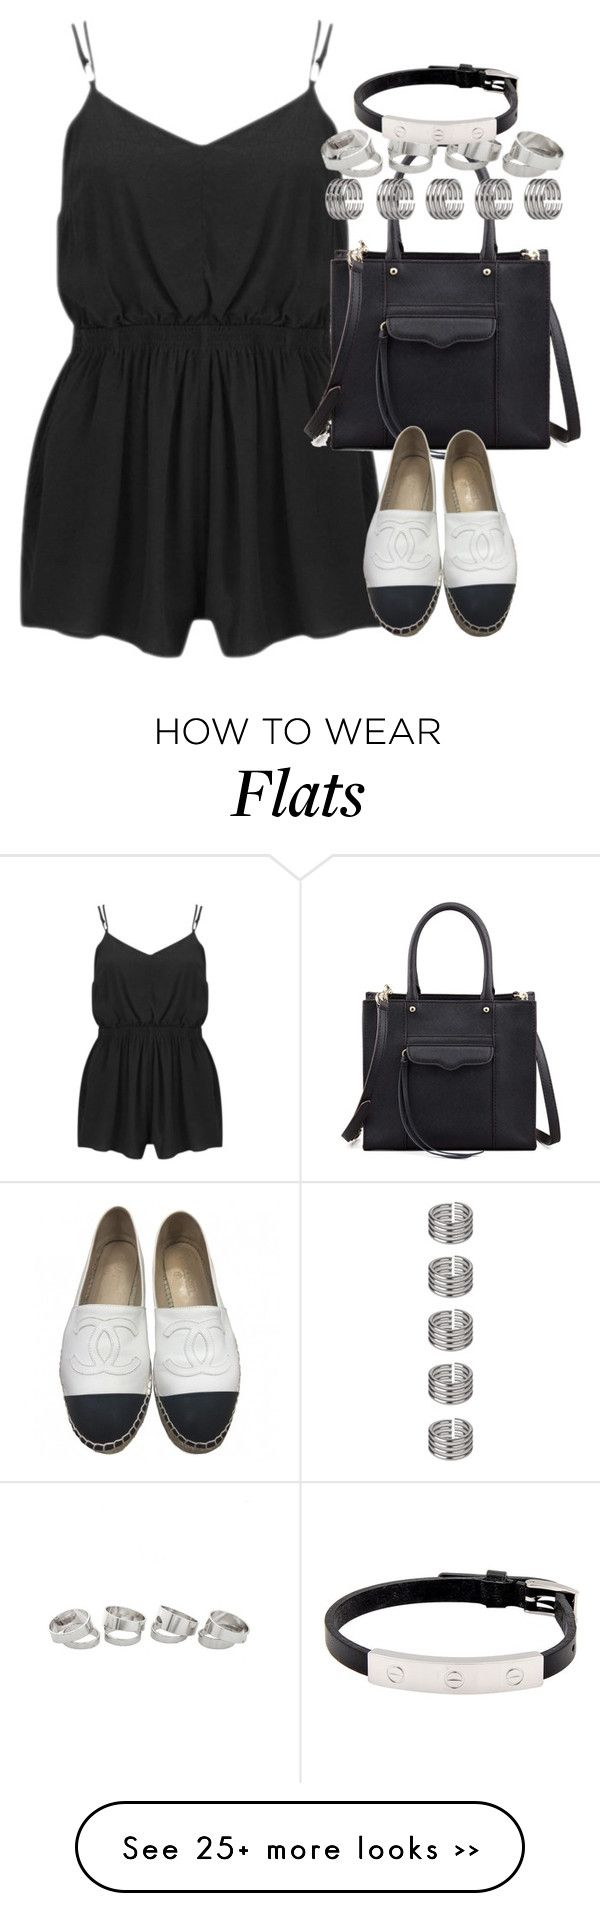 """Untitled #322"" by lama19 on Polyvore"